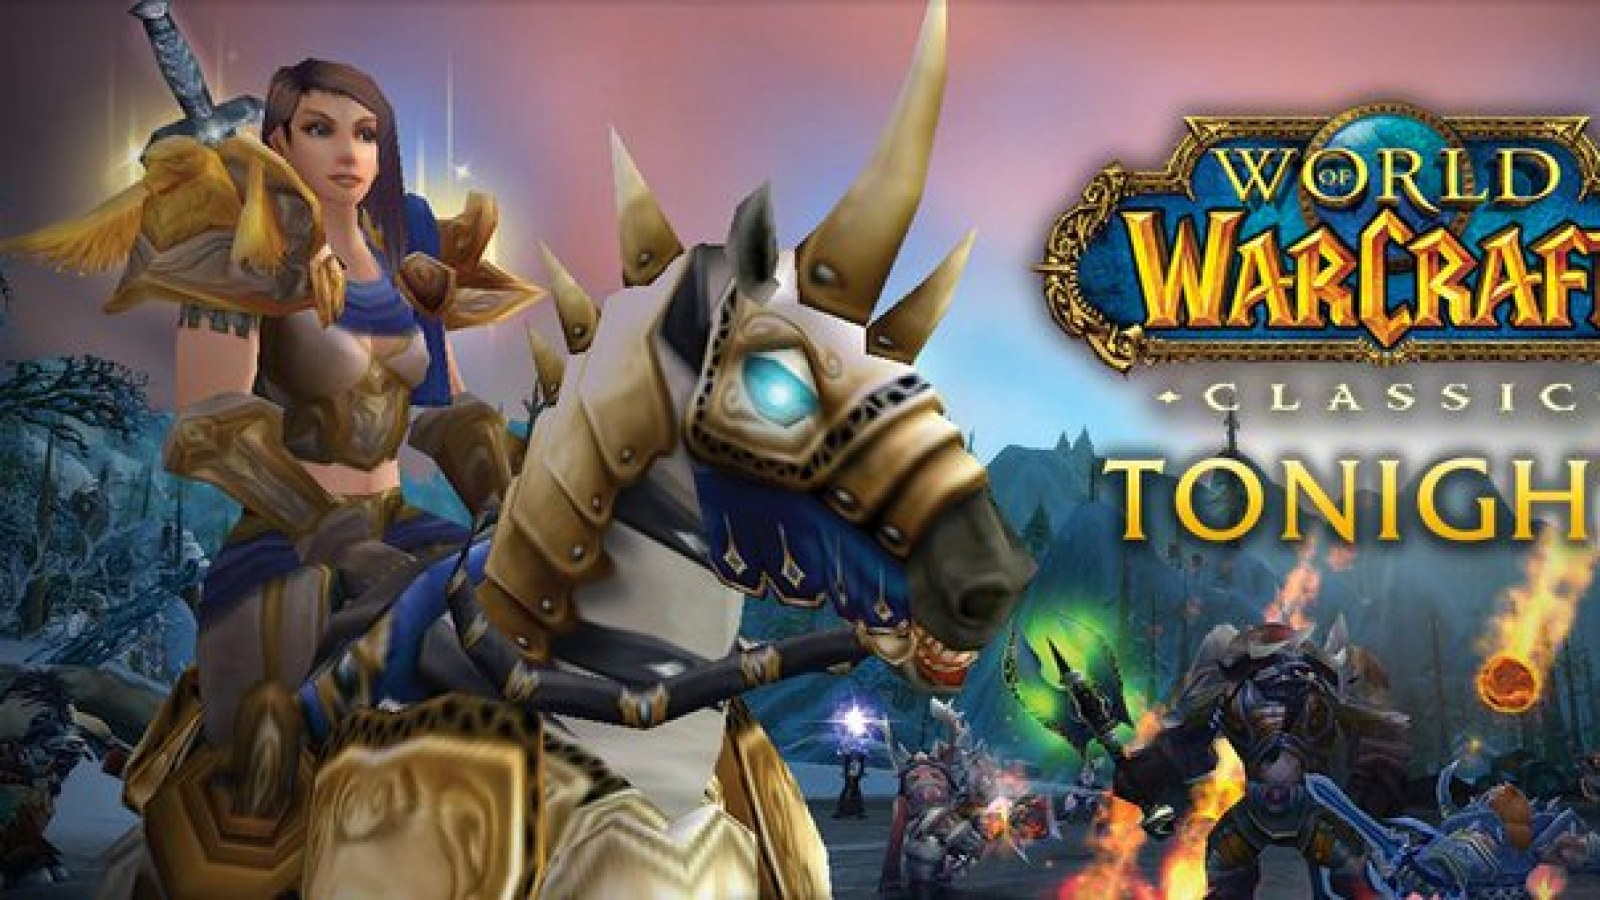 Buying gold for wow becomes one of the great options on the internet